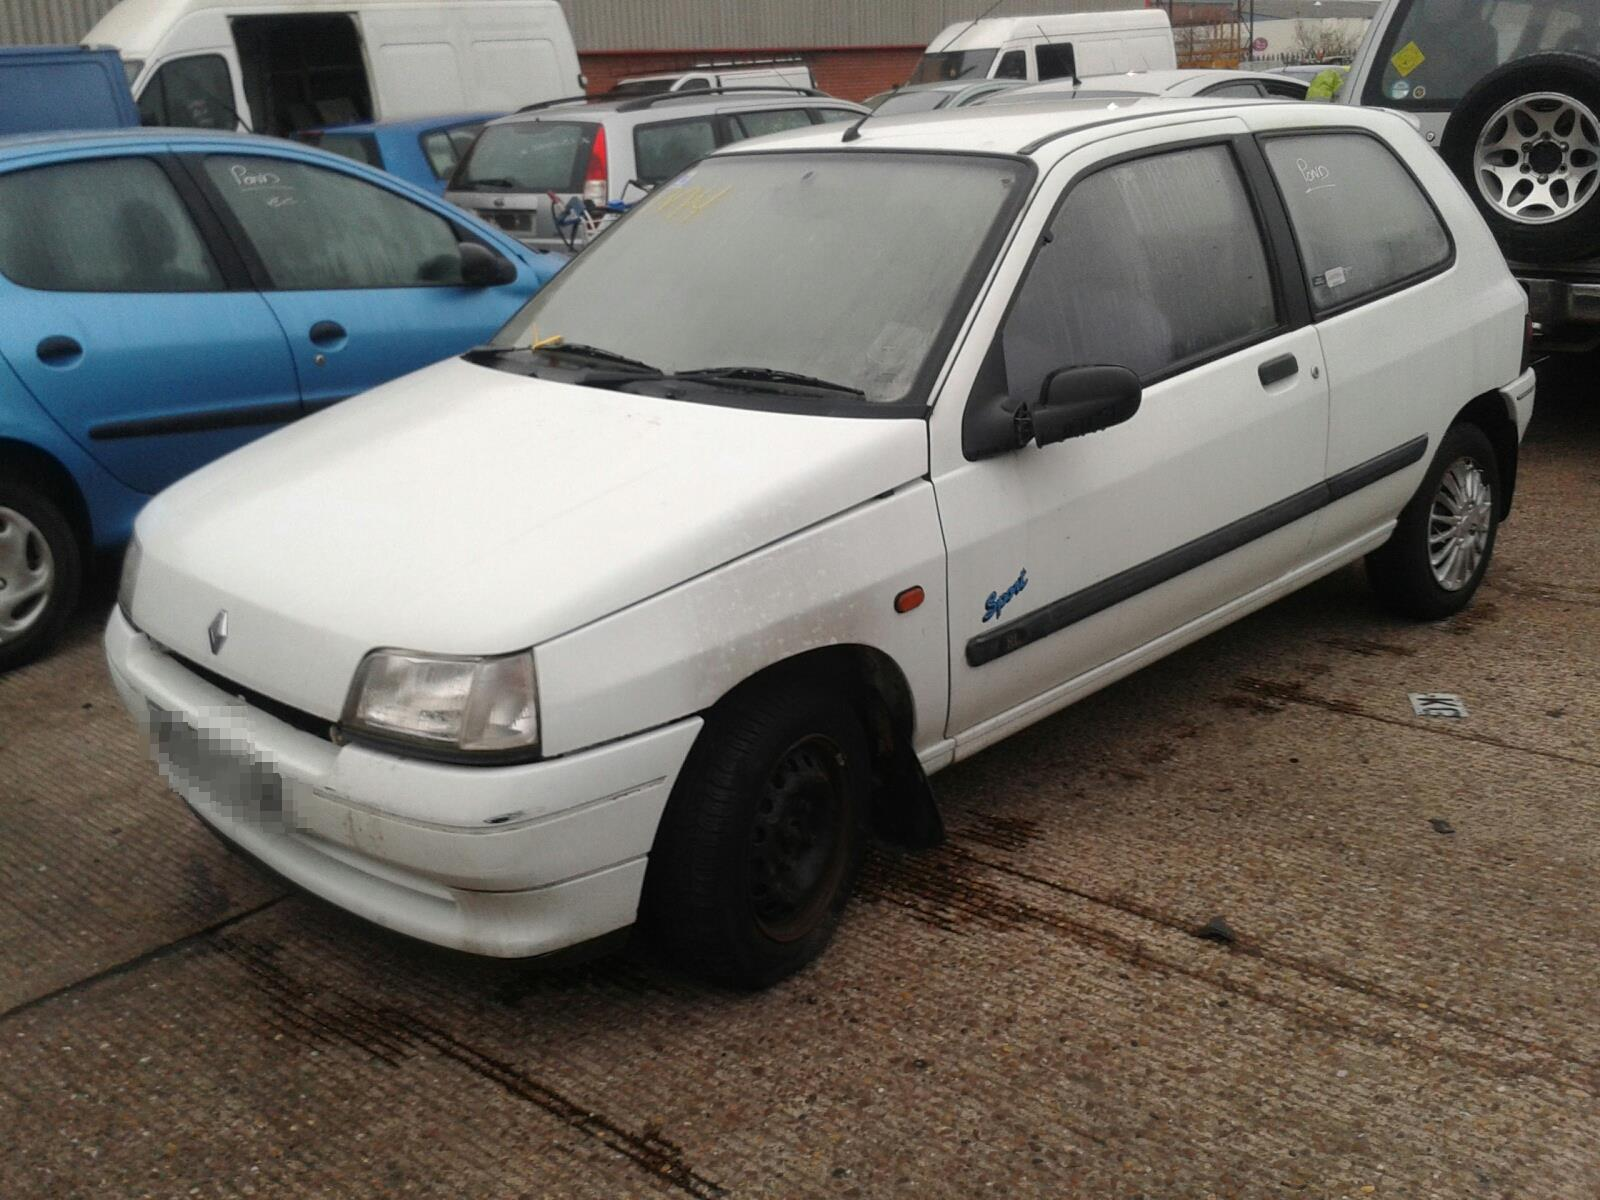 1996 renault clio 1991 to 1998 3 door hatchback petrol manual rh motorhog co uk renault clio 1 repair manual renault clio 1 workshop manual